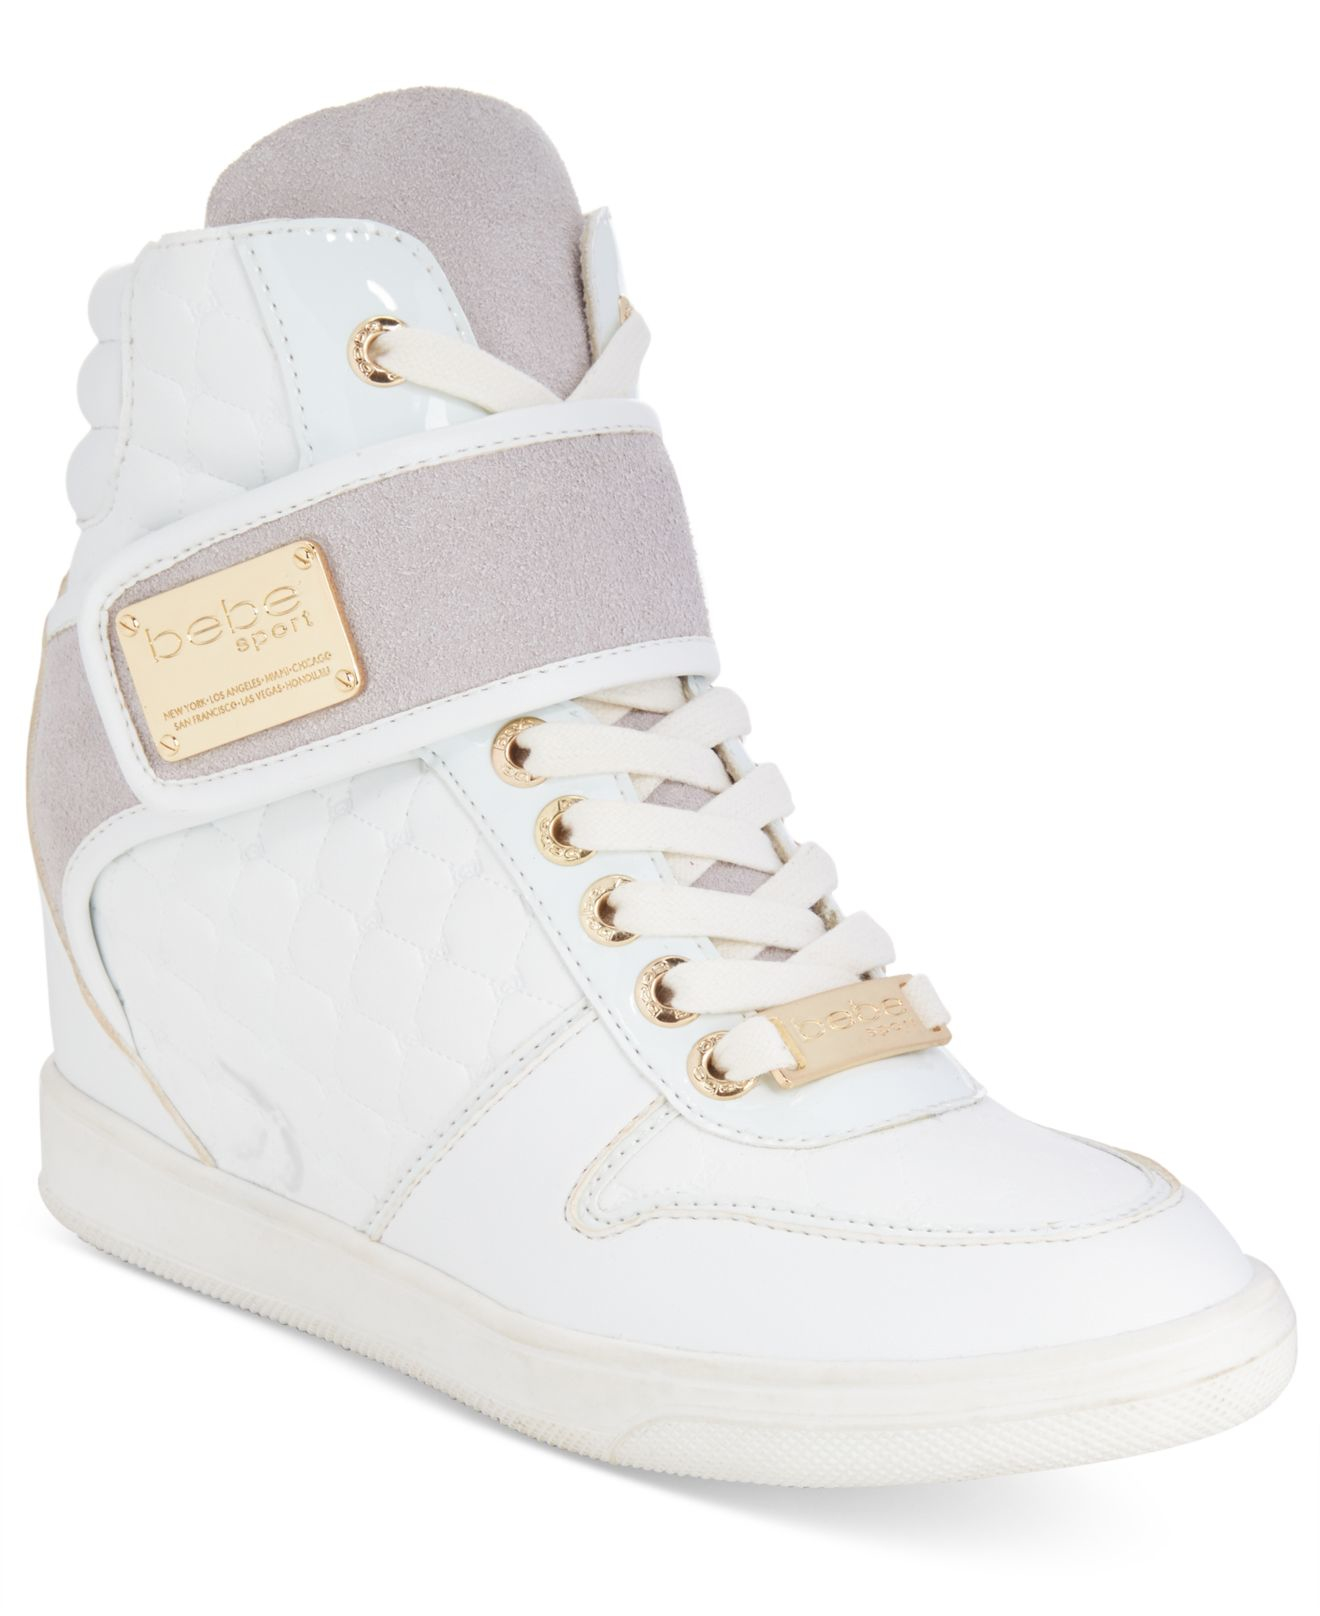 1c4422409fe9 Gallery. Previously sold at  Macy s · Women s Wedge Sneakers ...